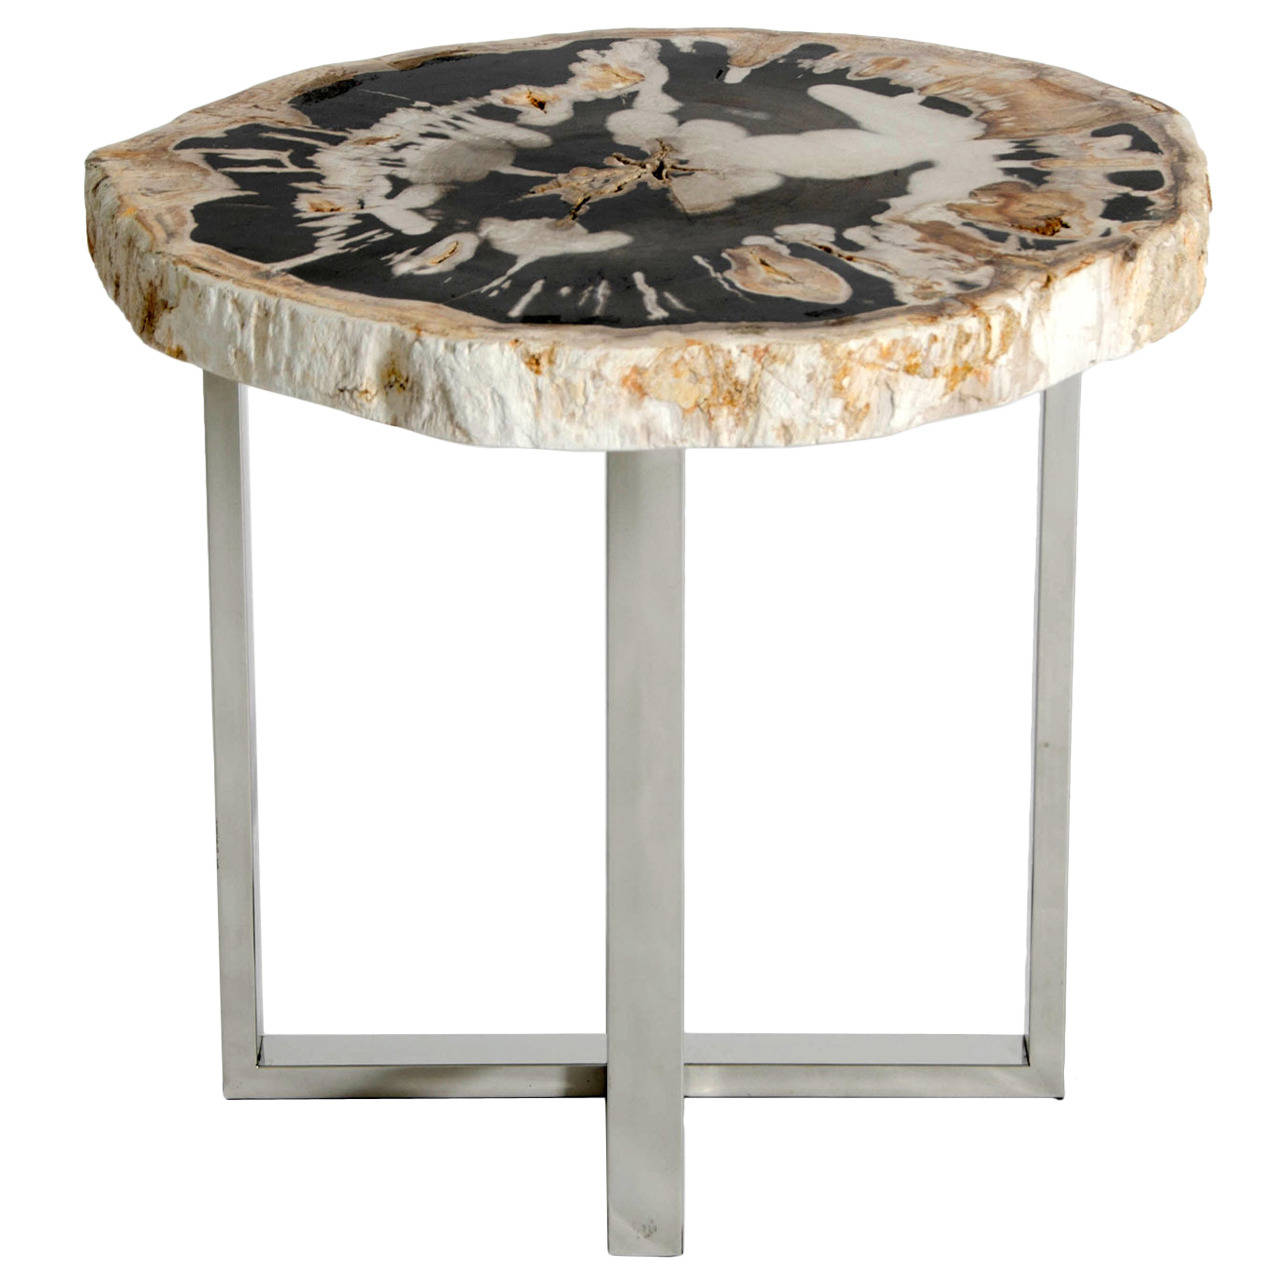 end table with petrified wood top accent for perspex coffee wicker tables drawers west elm box frame white and brown side lighting seattle long skinny console hall chests consoles